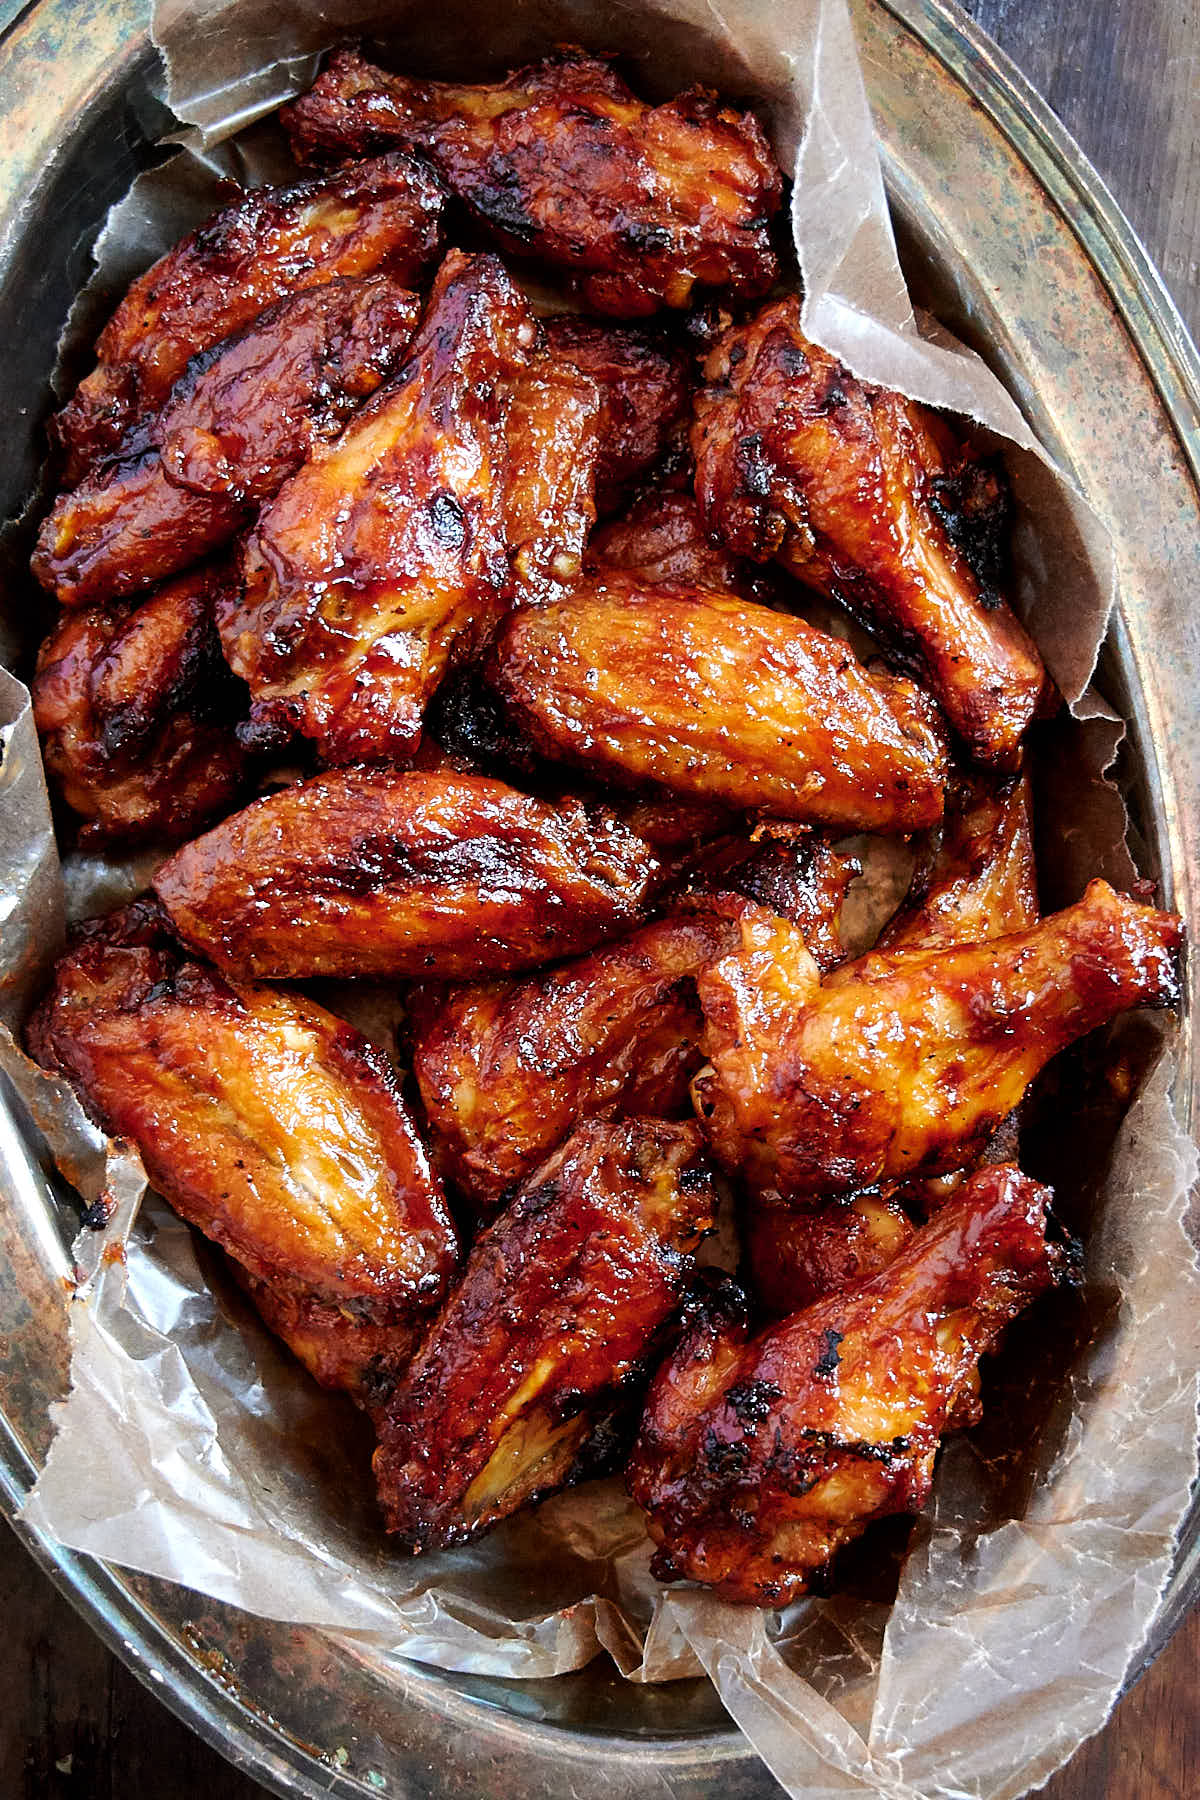 Baked BBQ Chicken Wings in a serving basket lined with wax paper.